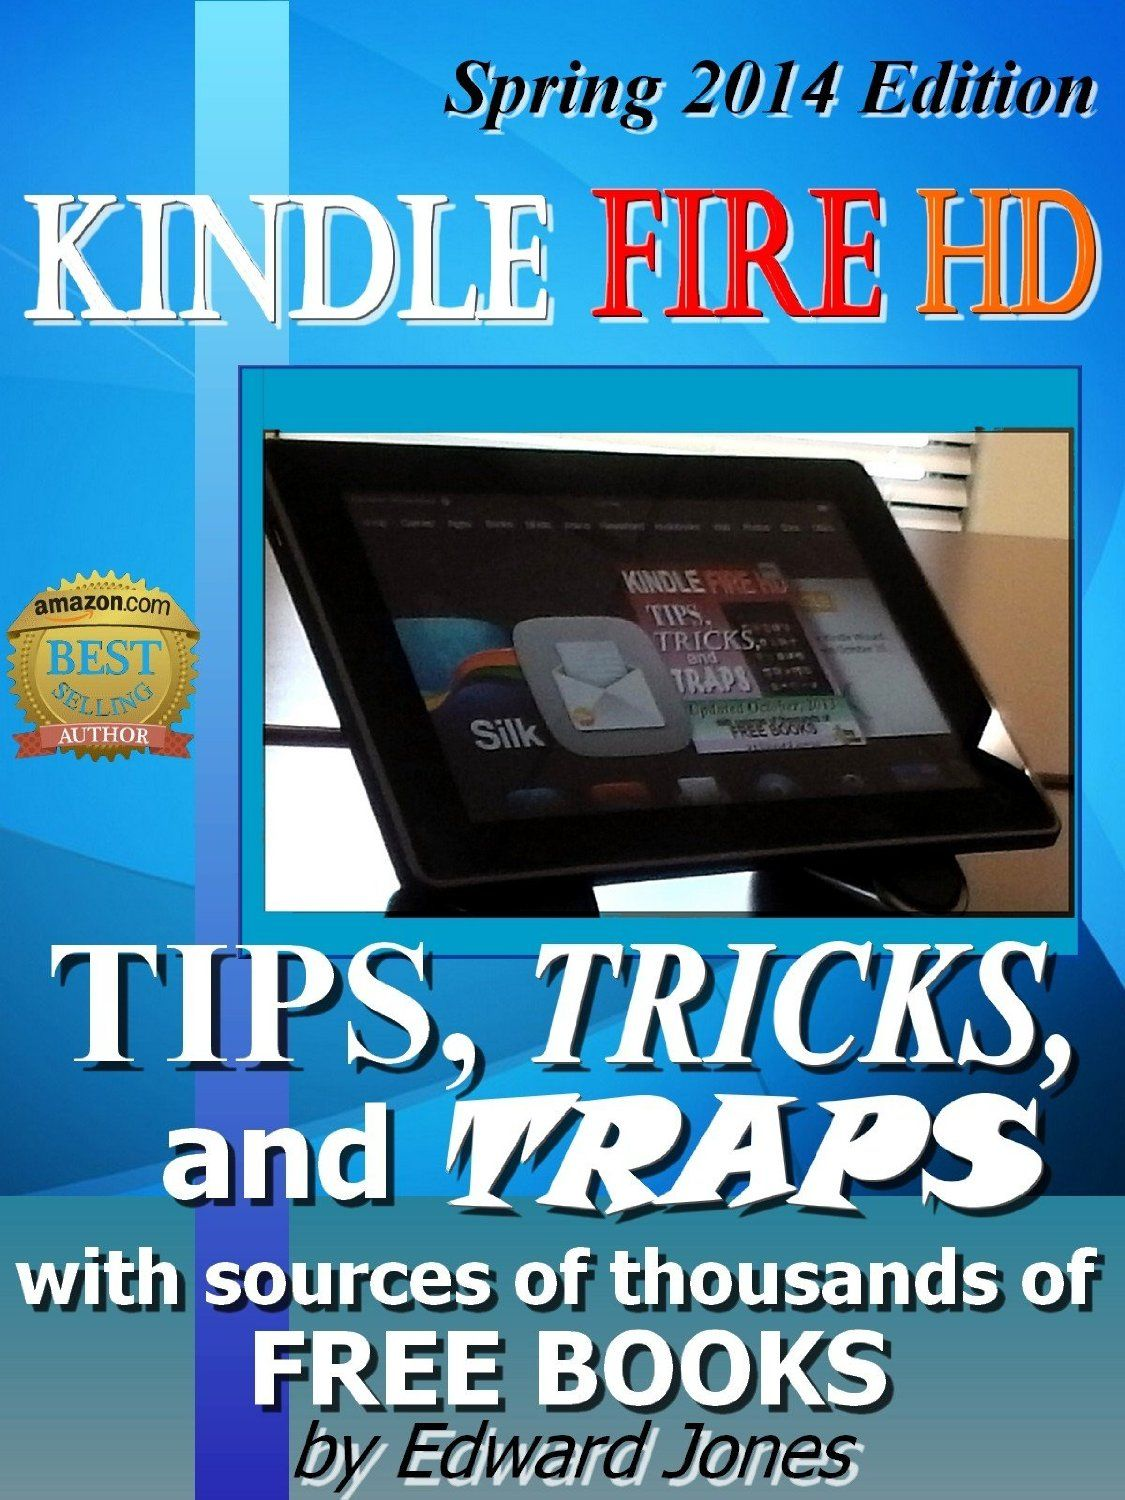 Kindle Fire Hd Tips Tricks And Traps A How To Tutorial For The Kindle Fire Hd By Edward Jones 1 20 Kindle Fire Kindle Fire Hd Kindle